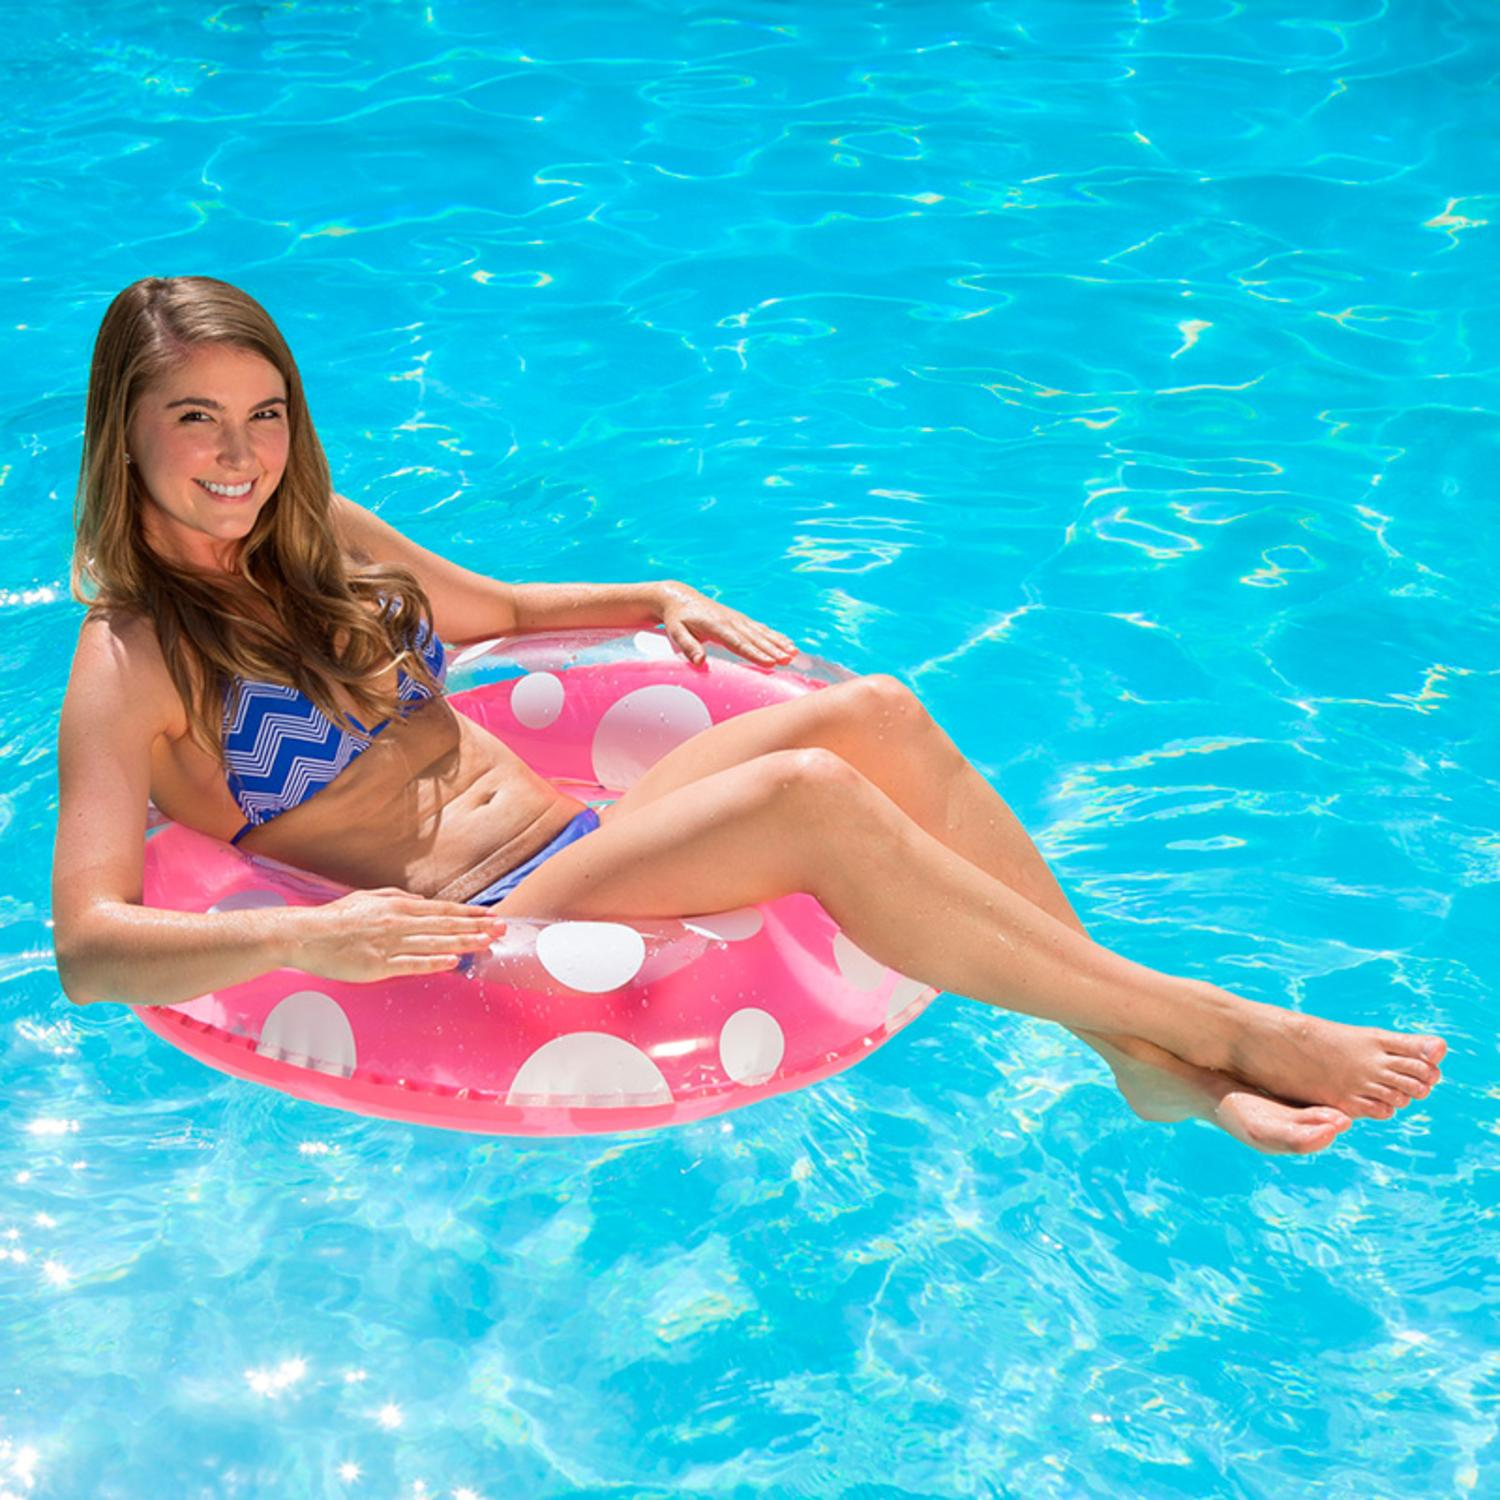 """Swim Central 36"""" Inflatable 1-Person Swimming Pool Inner Tube - Pink/White"""